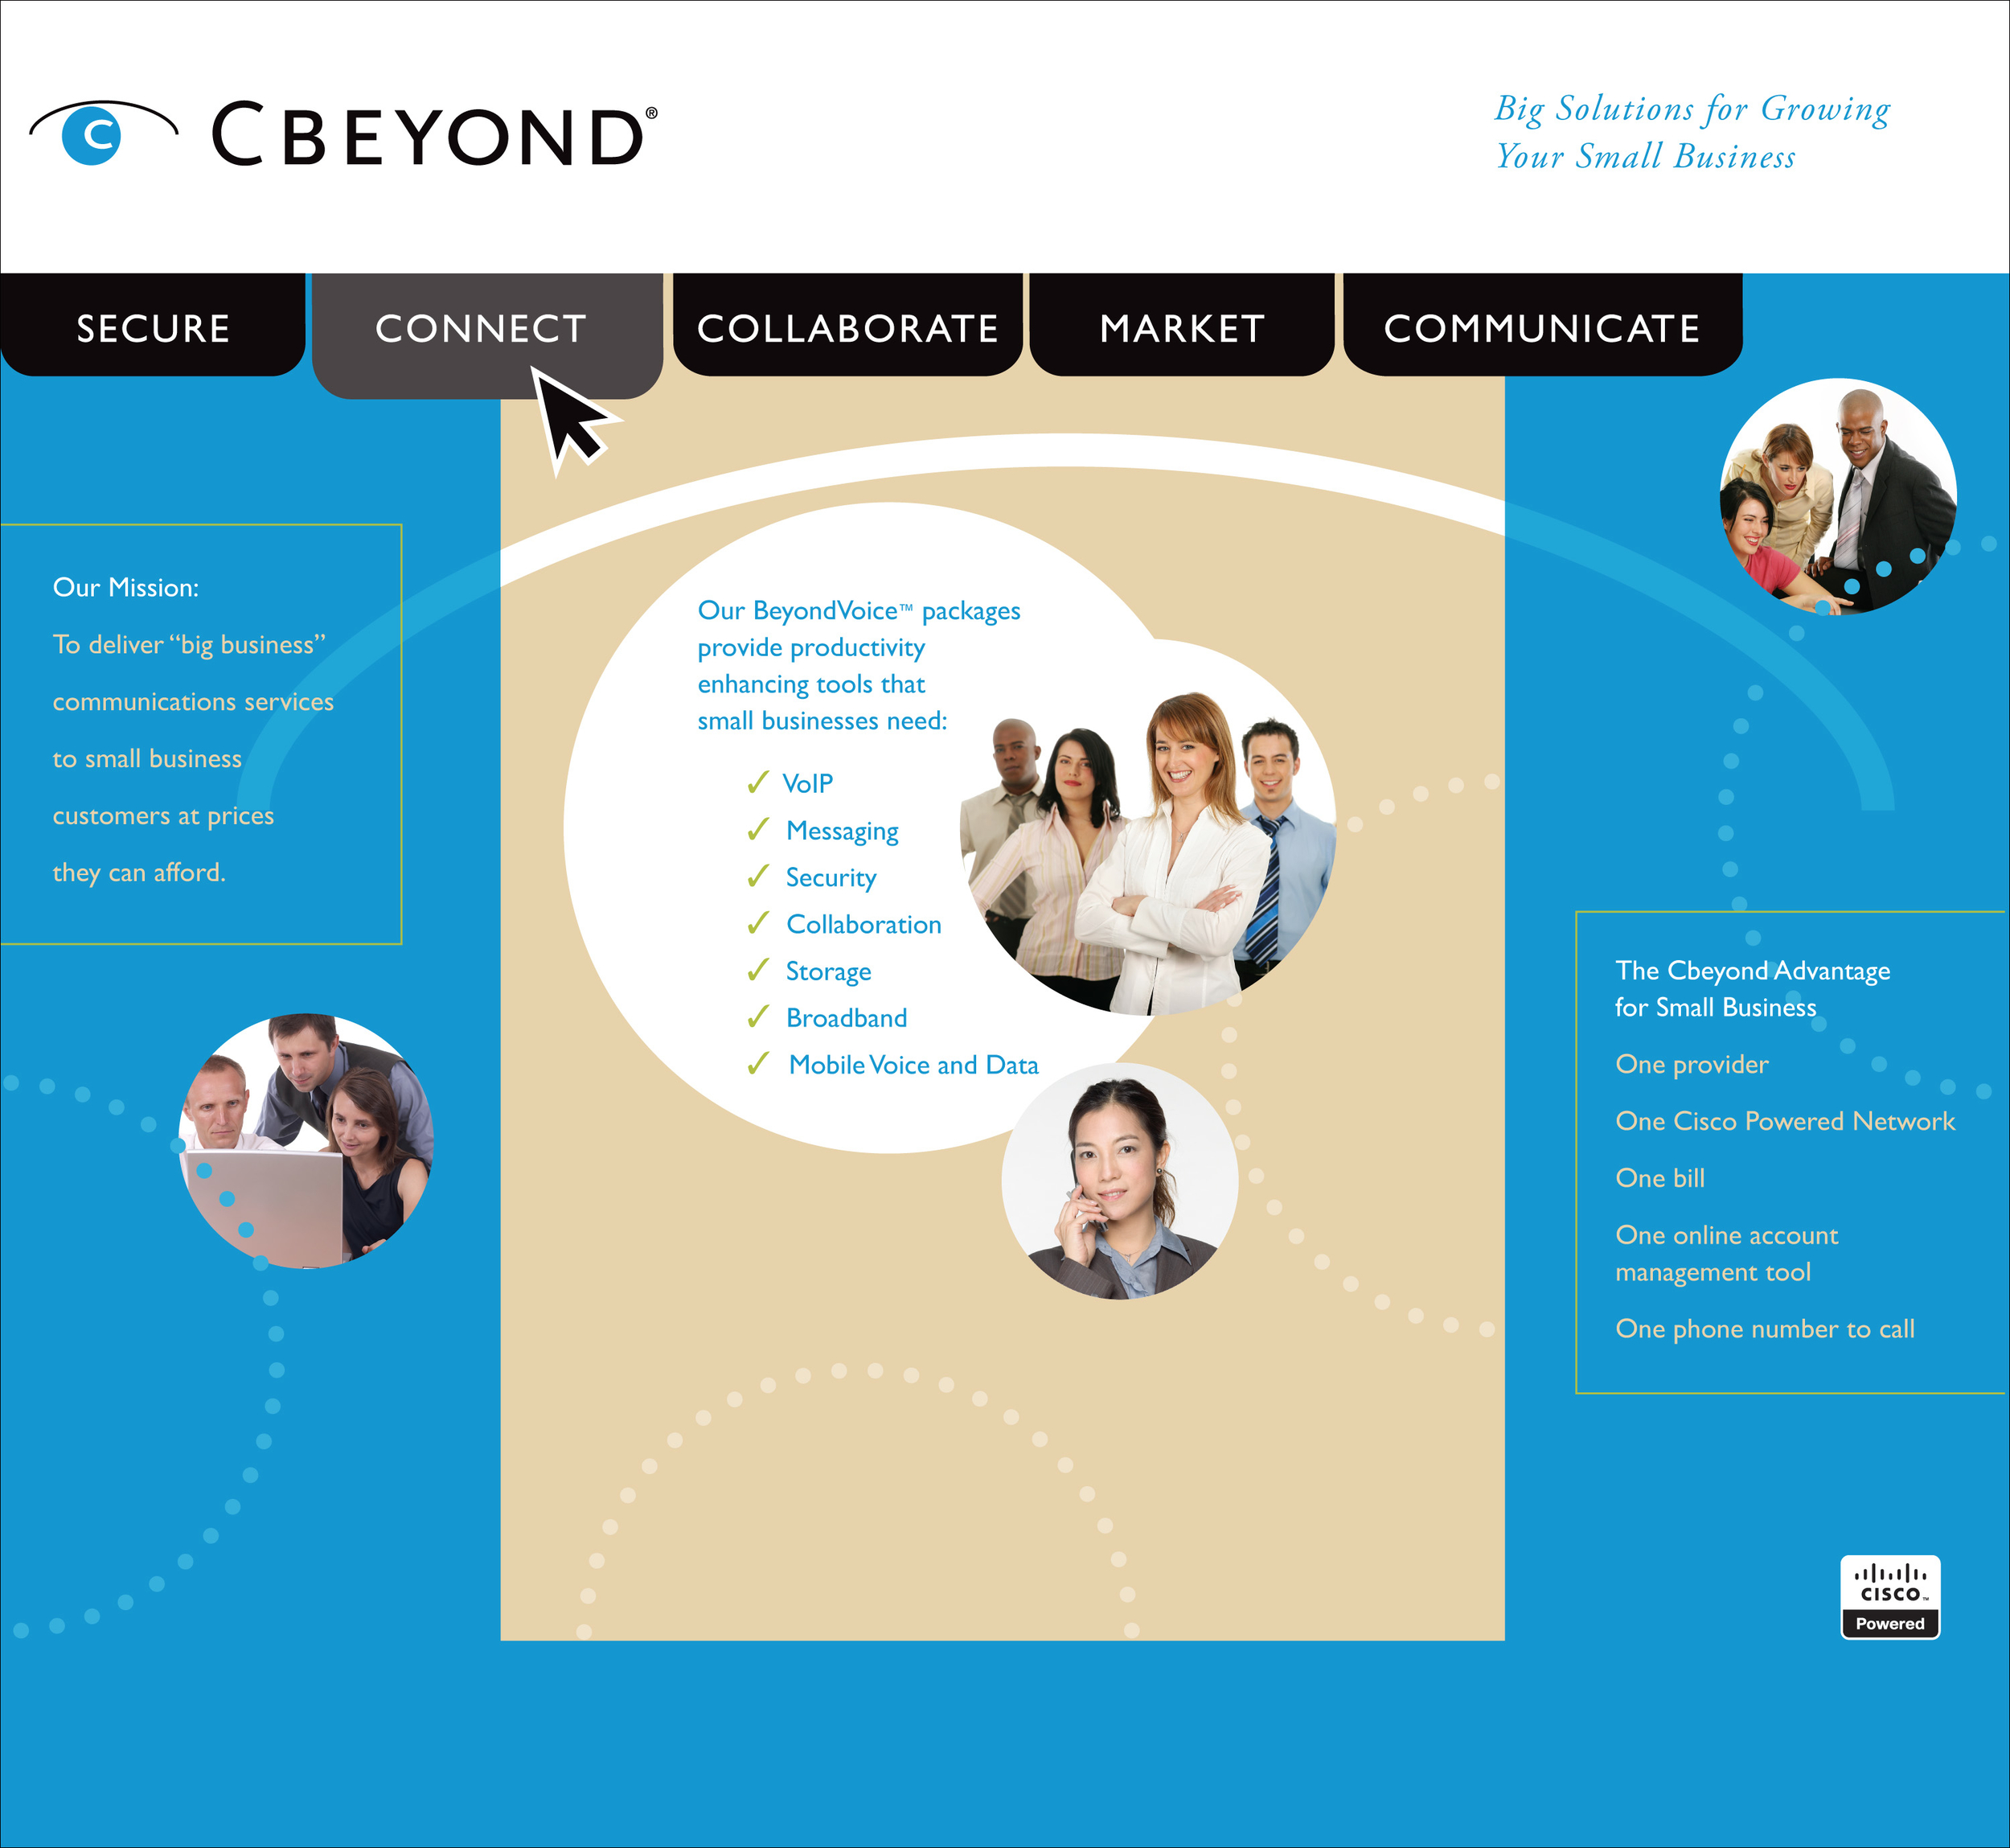 CBeyond Trade Show Booth Background Display